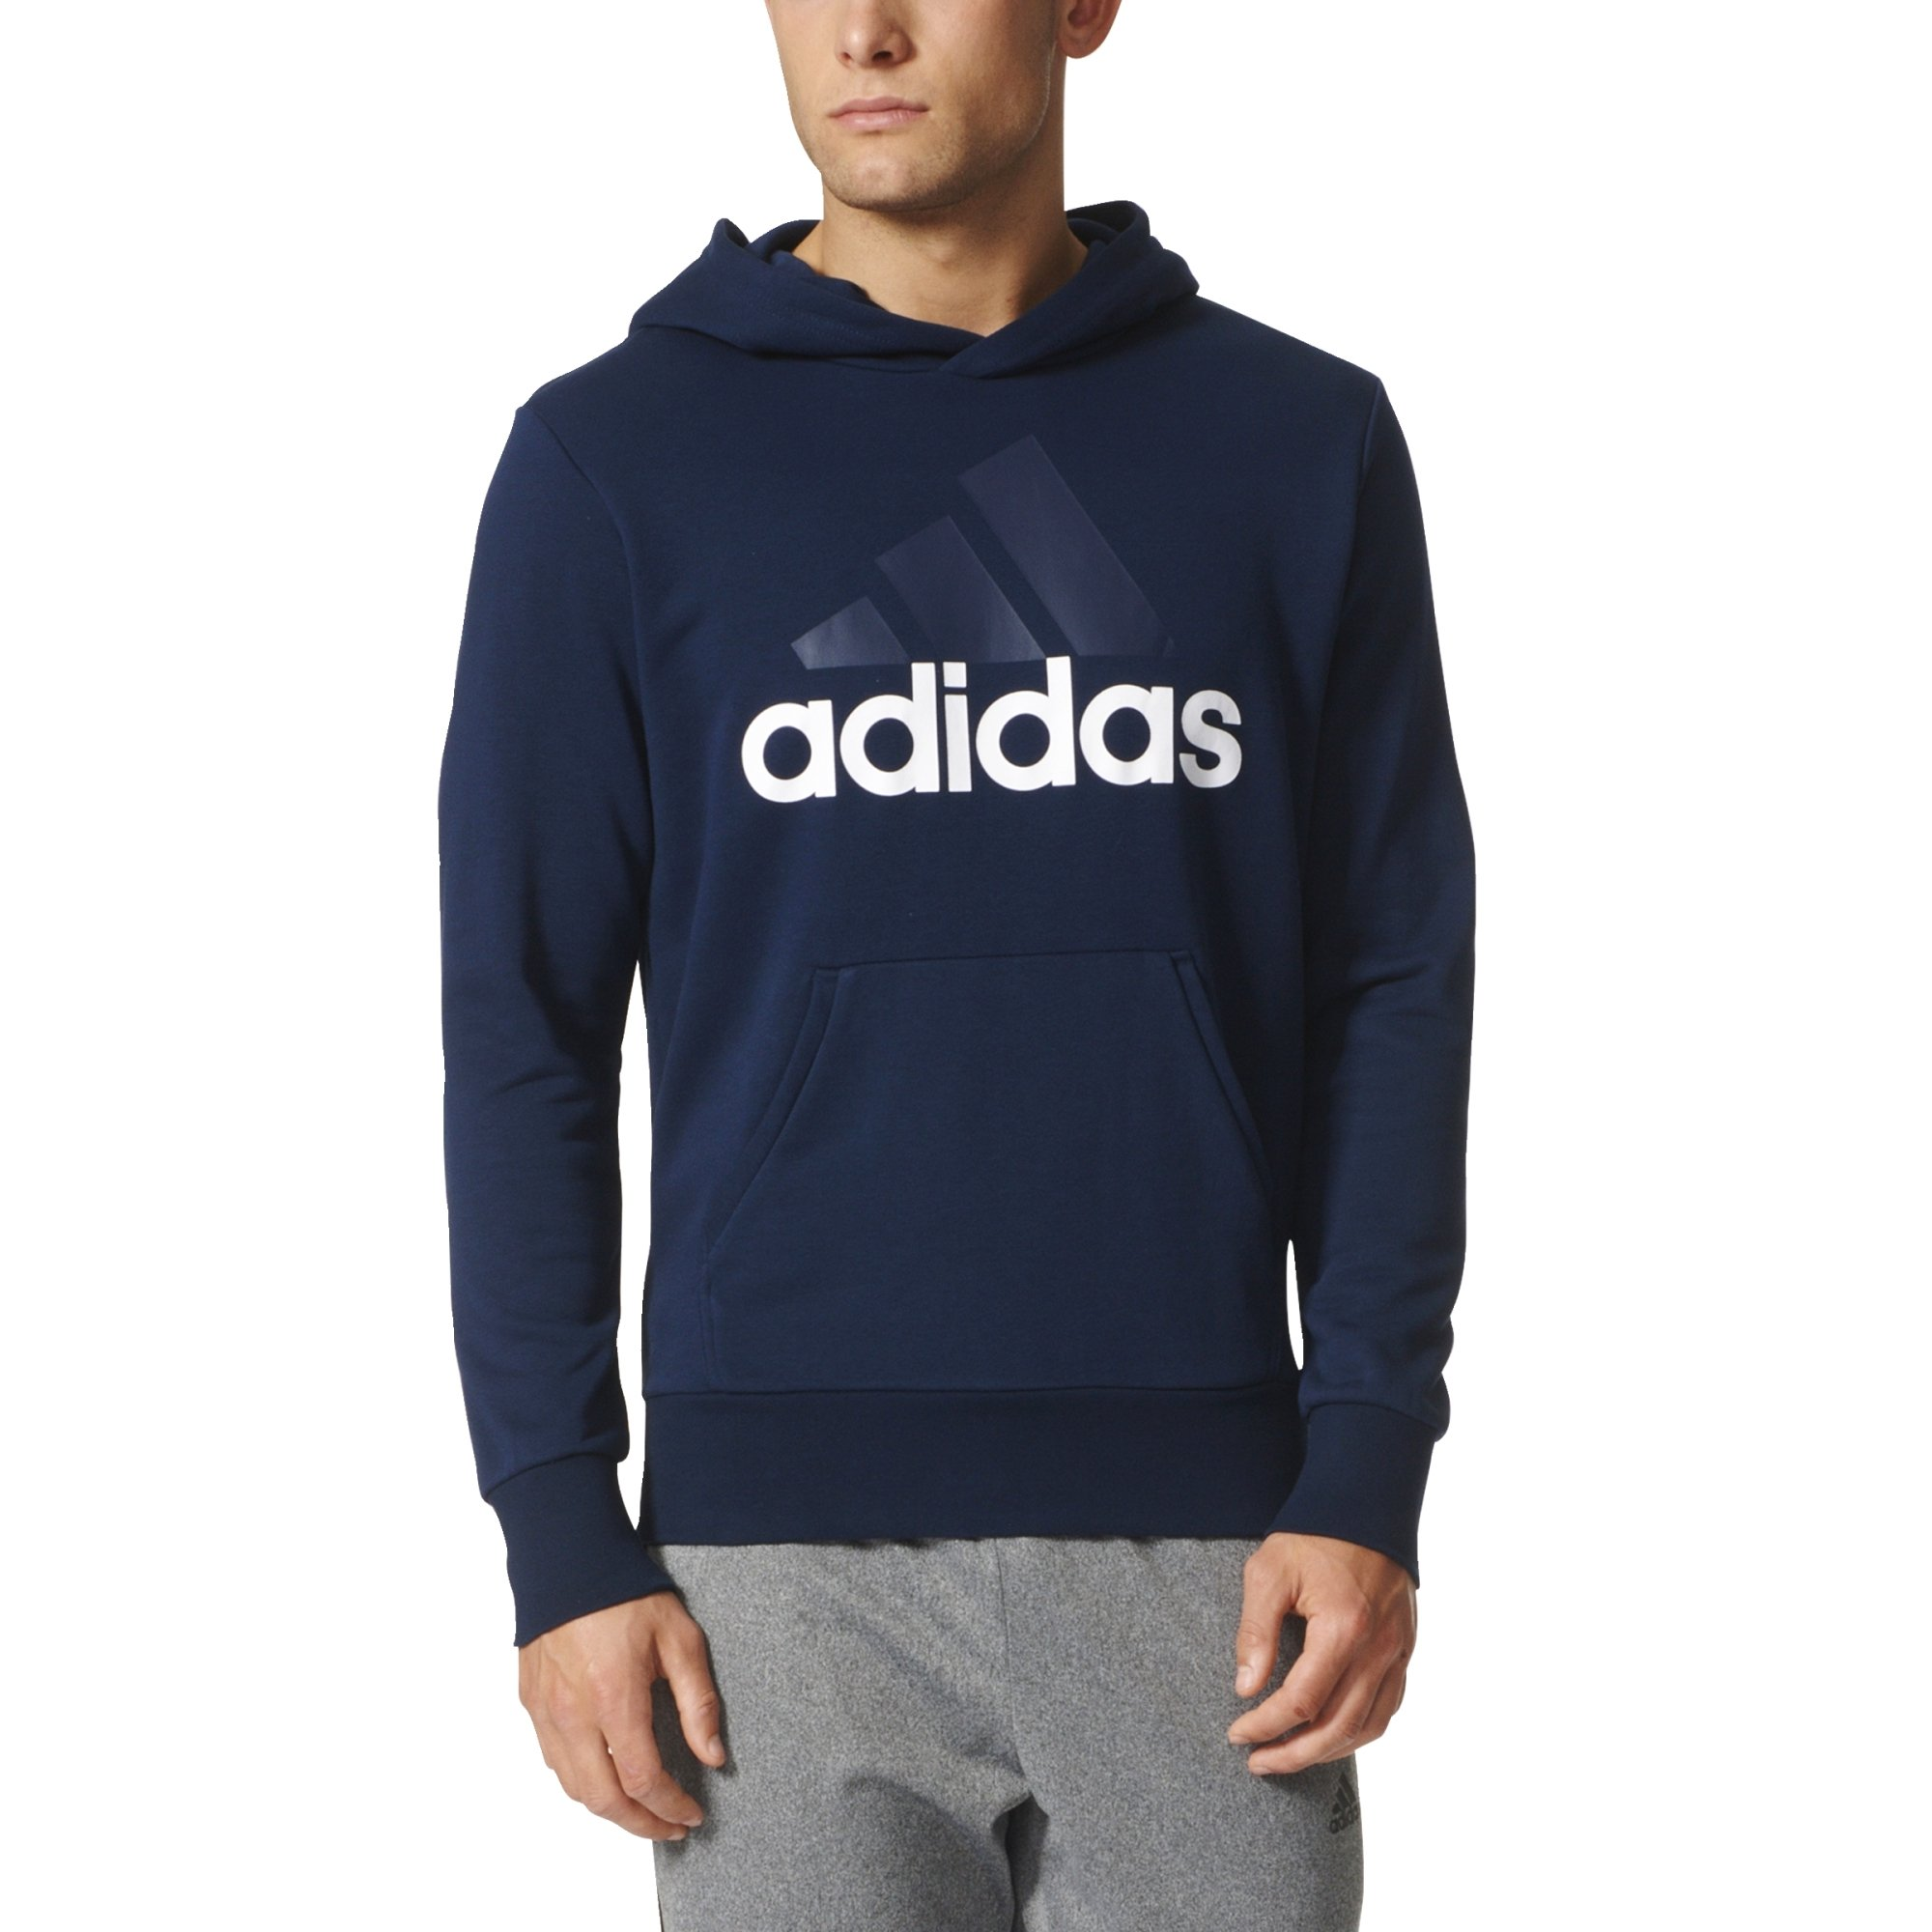 adidas Men's Essential Linear Logo Pullover Hoodie, Collegiate Navy/White, XX-Large by adidas